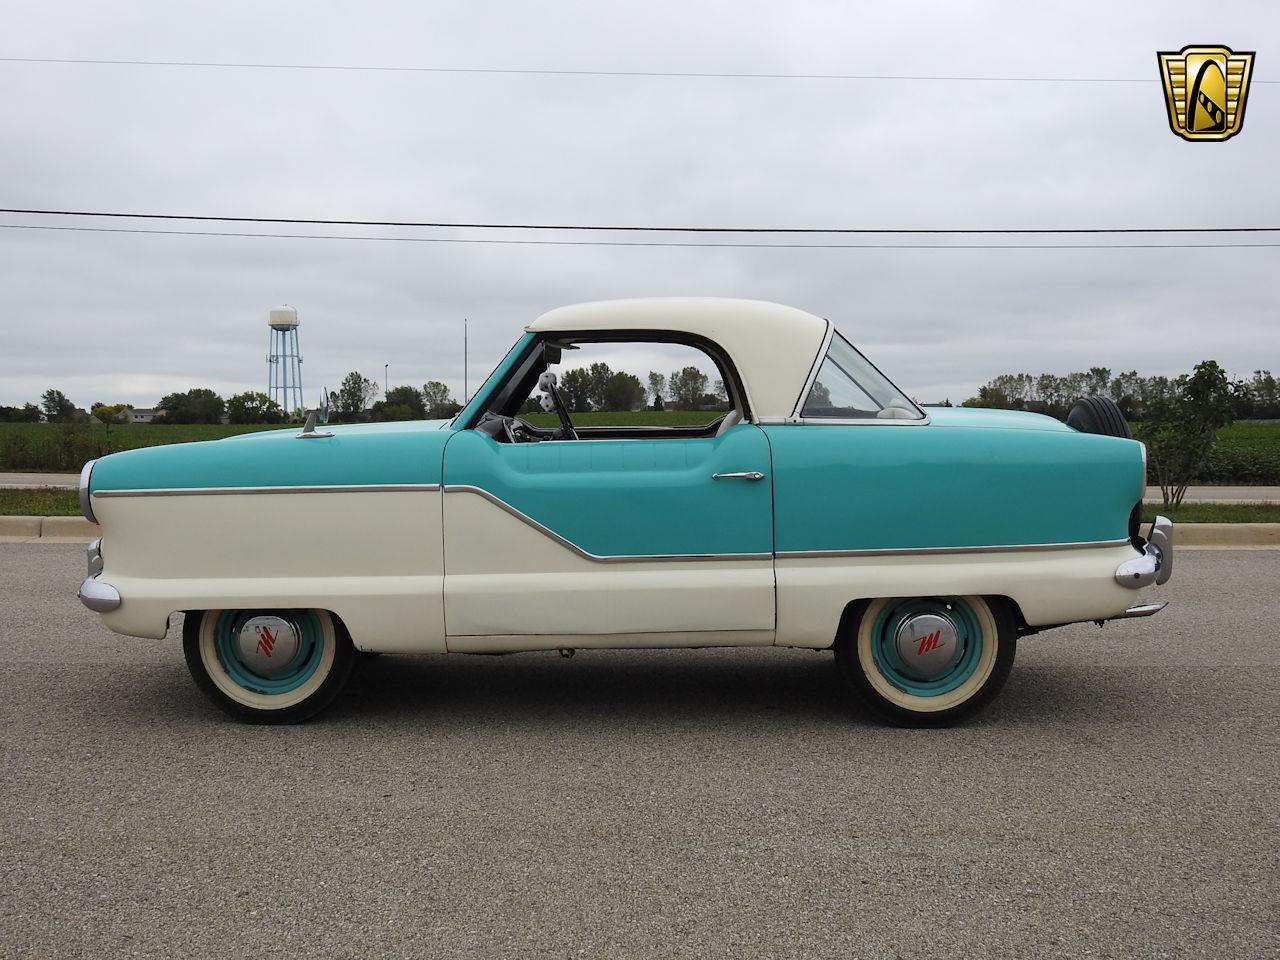 Large Picture of 1957 Metropolitan located in Kenosha Wisconsin - $12,995.00 Offered by Gateway Classic Cars - Milwaukee - OOM4